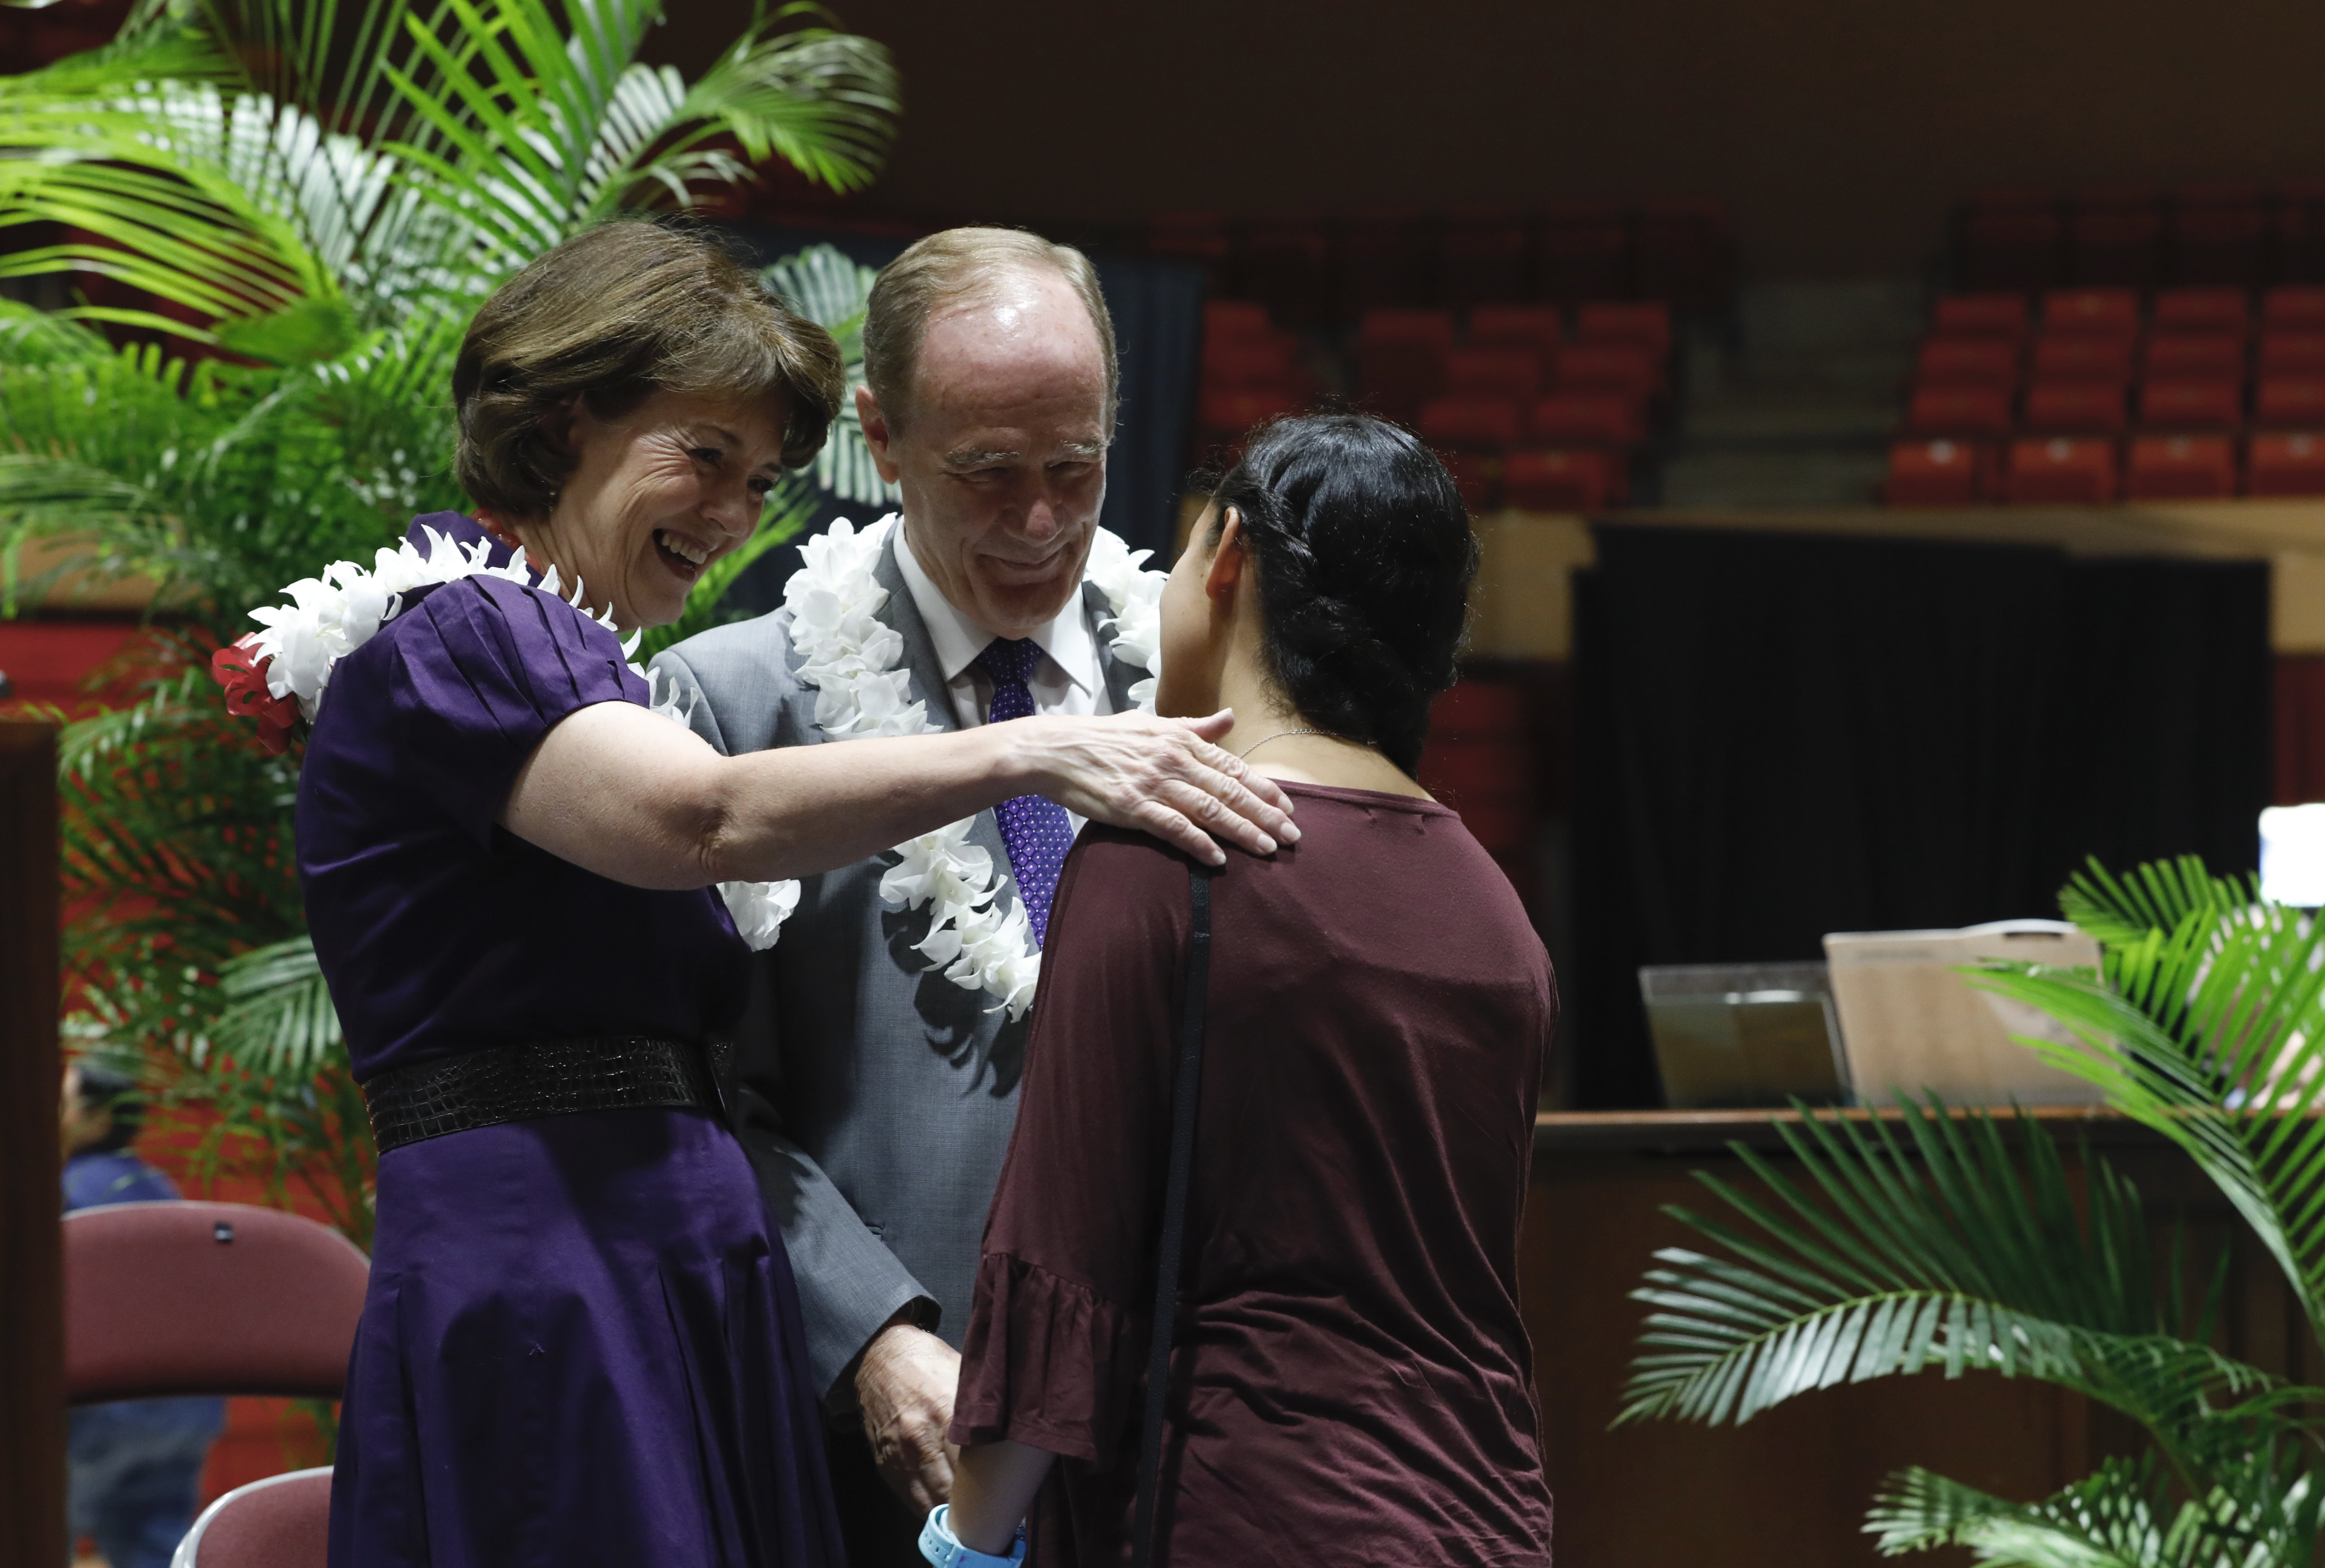 President John S. Tanner and his wife, Sister Susan W. Tanner, talk to a student at the BYU - Hawaii Devotional on September 10, 2019.